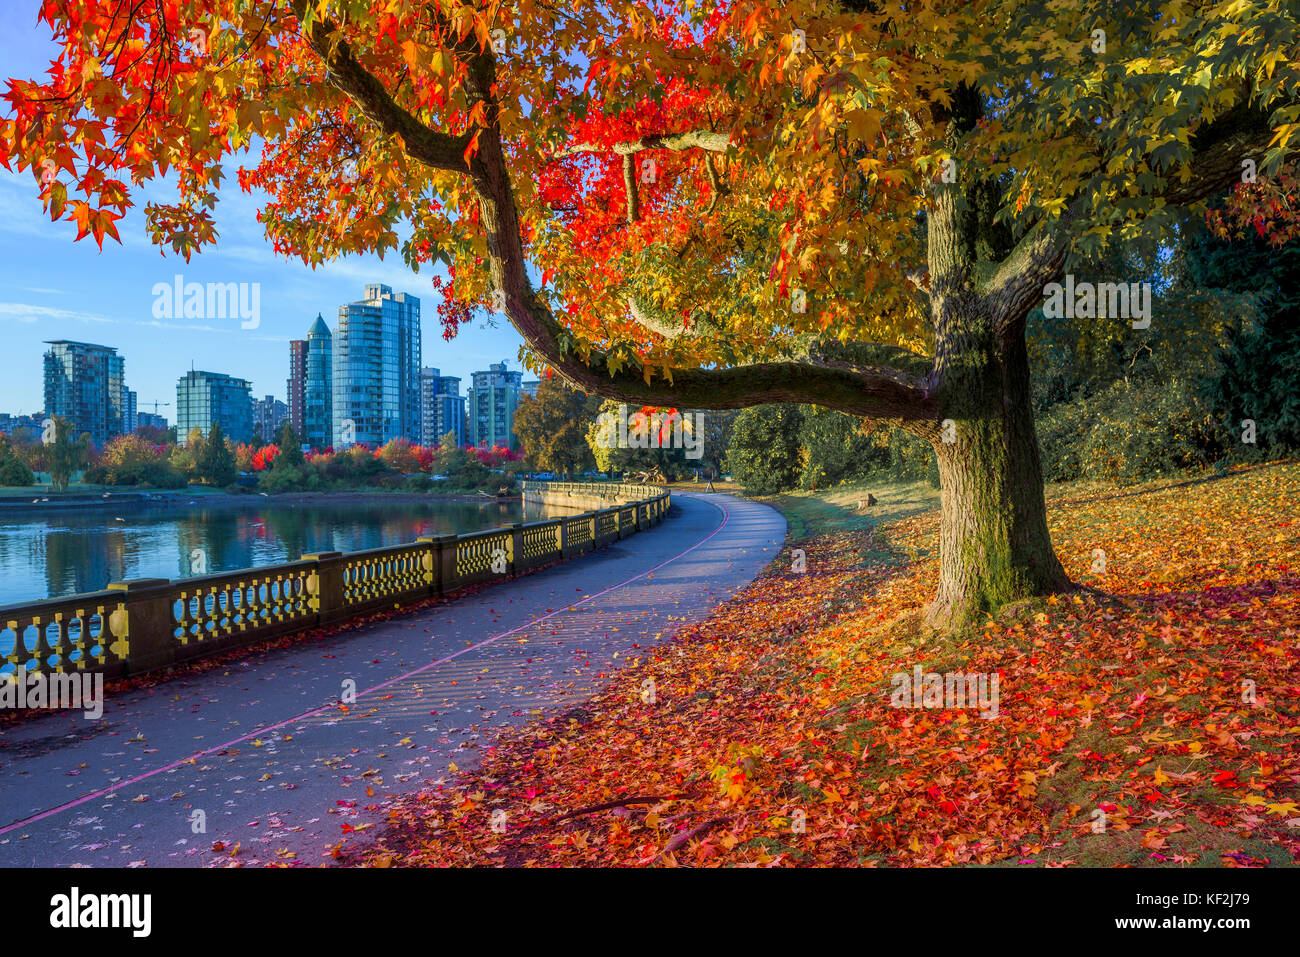 Vancouver Seawall Stanley Park Stock Photos & Vancouver